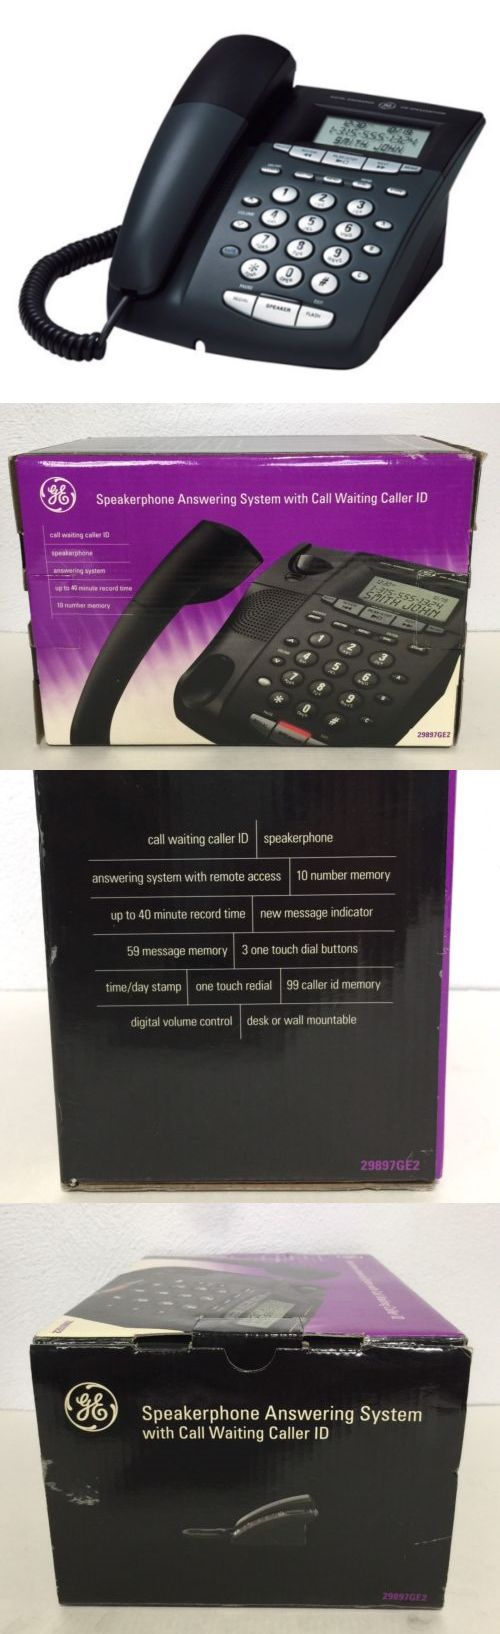 Corded Telephones: Ge Corded Phone With Caller Id Digital Answering Machine 29897Ge2 Black New -> BUY IT NOW ONLY: $49.99 on eBay!